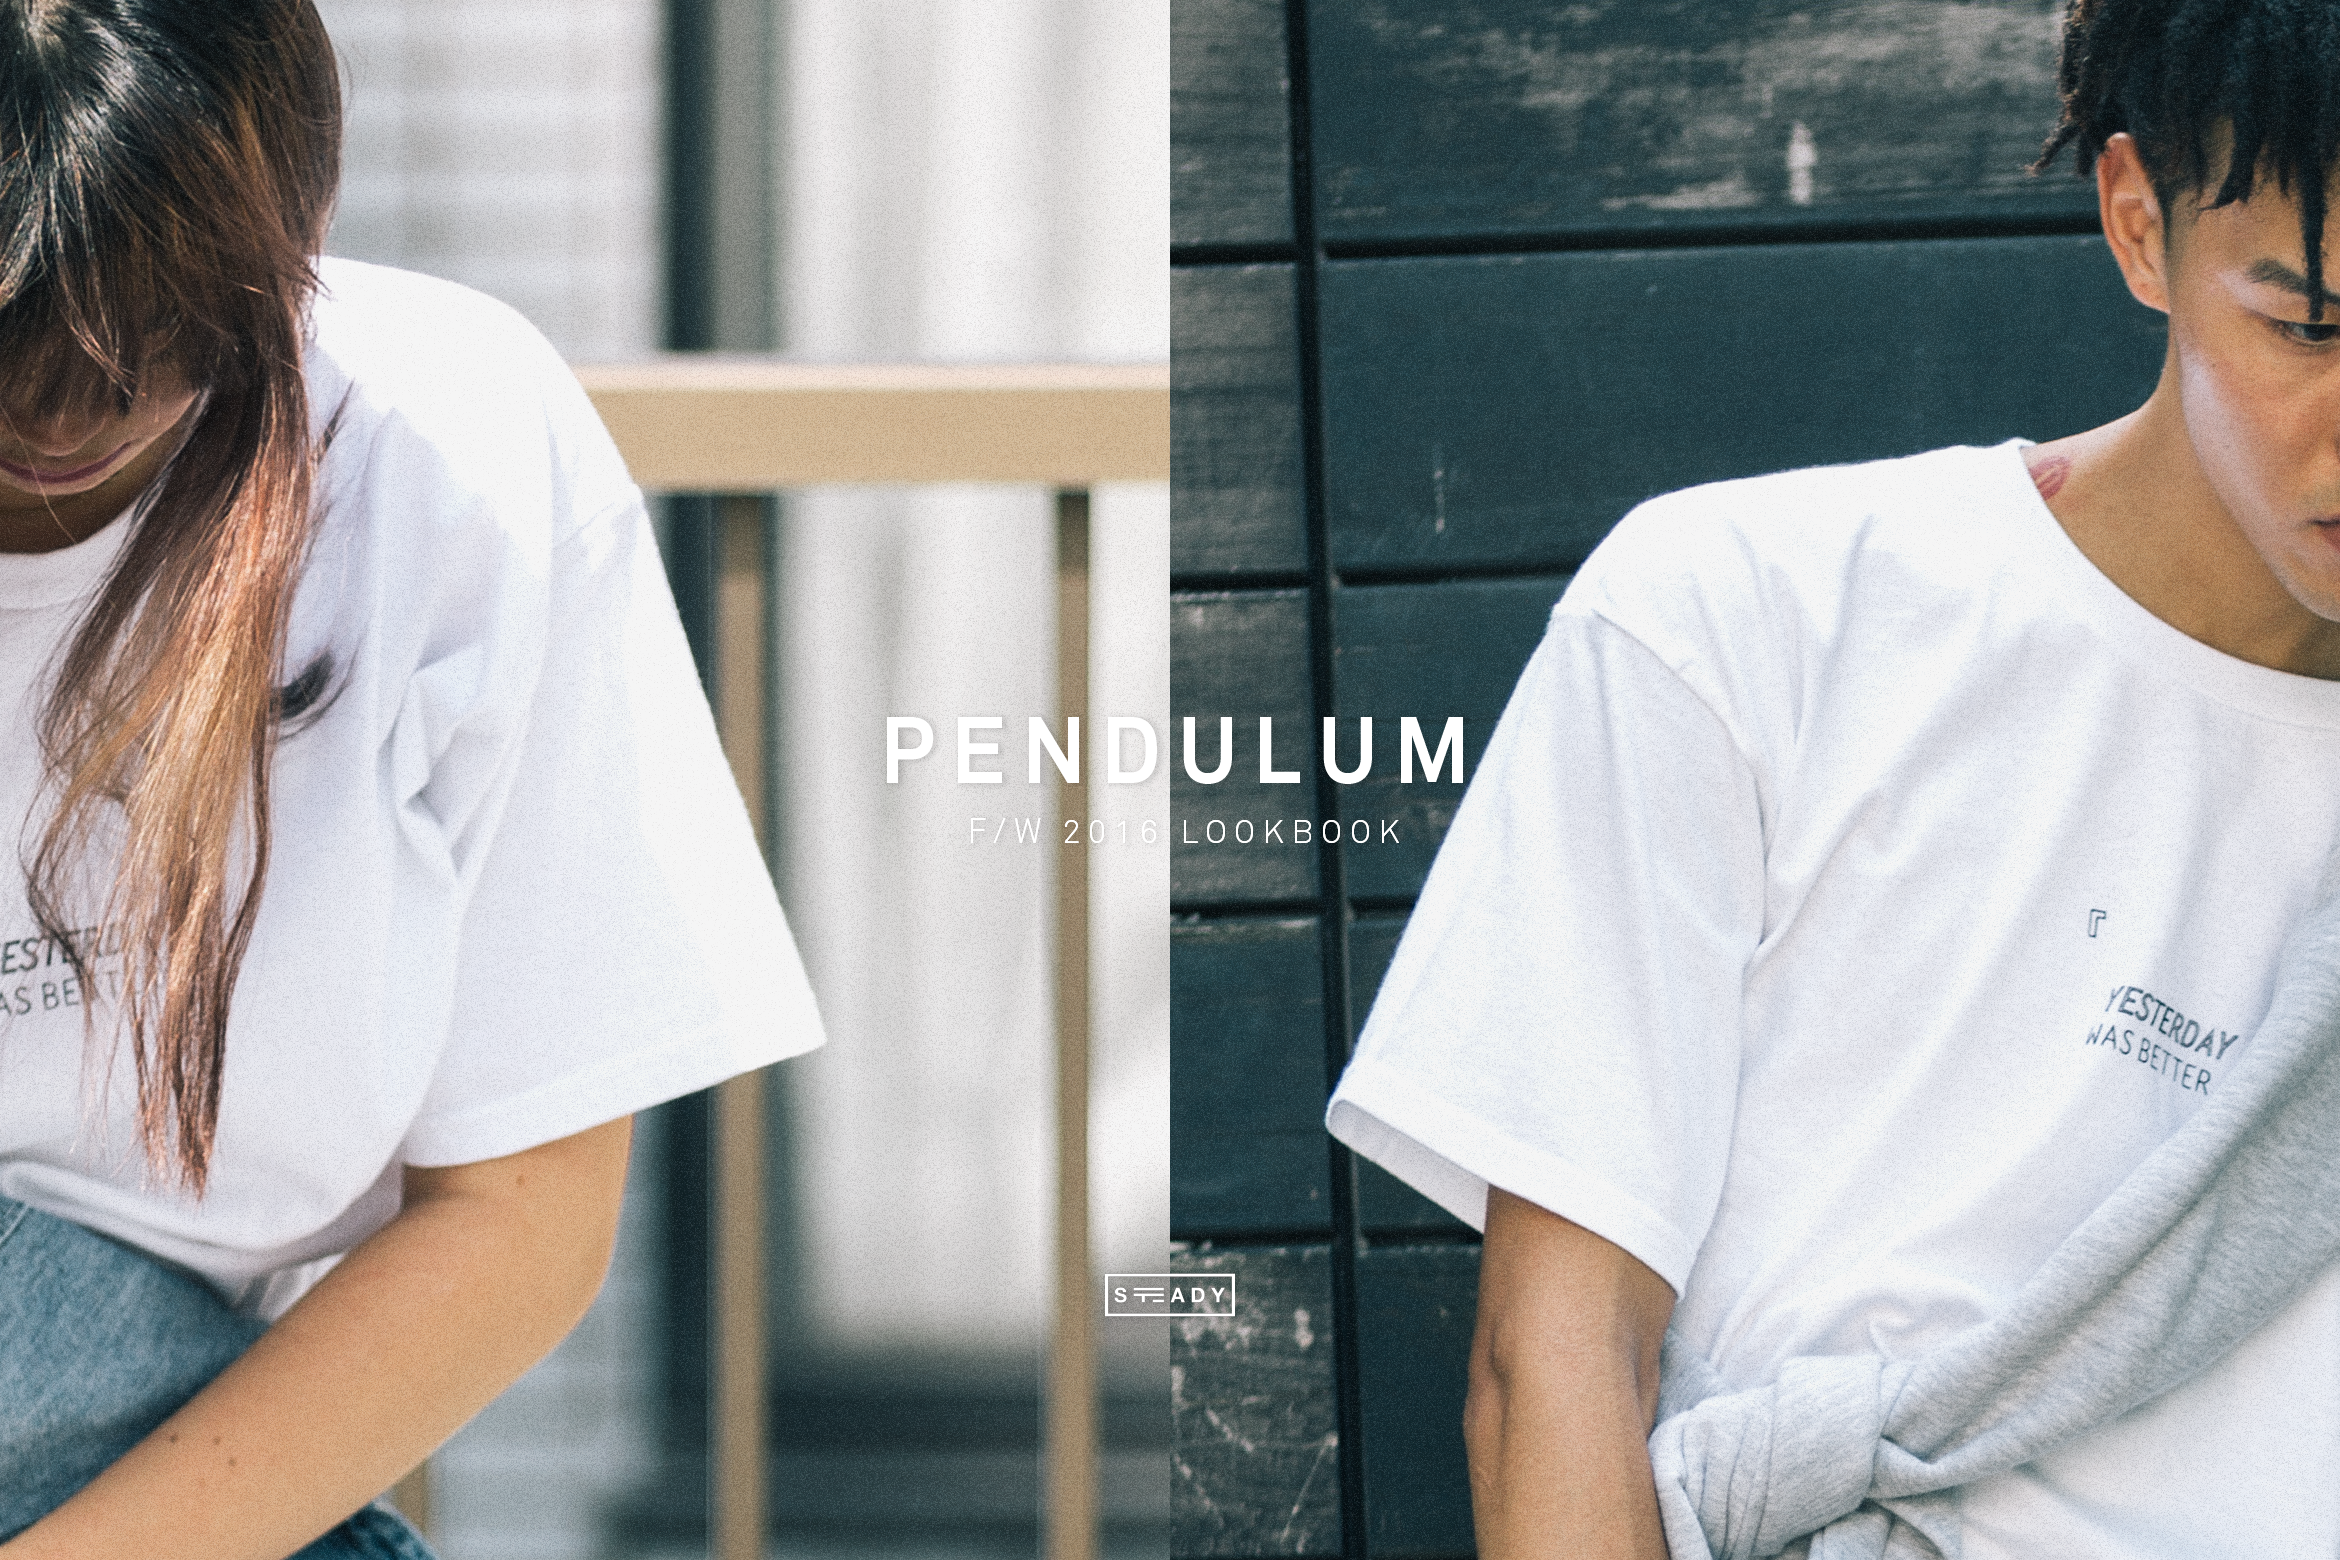 STEADY 'PENDULUM' F/W 2016 LOOKBOOK